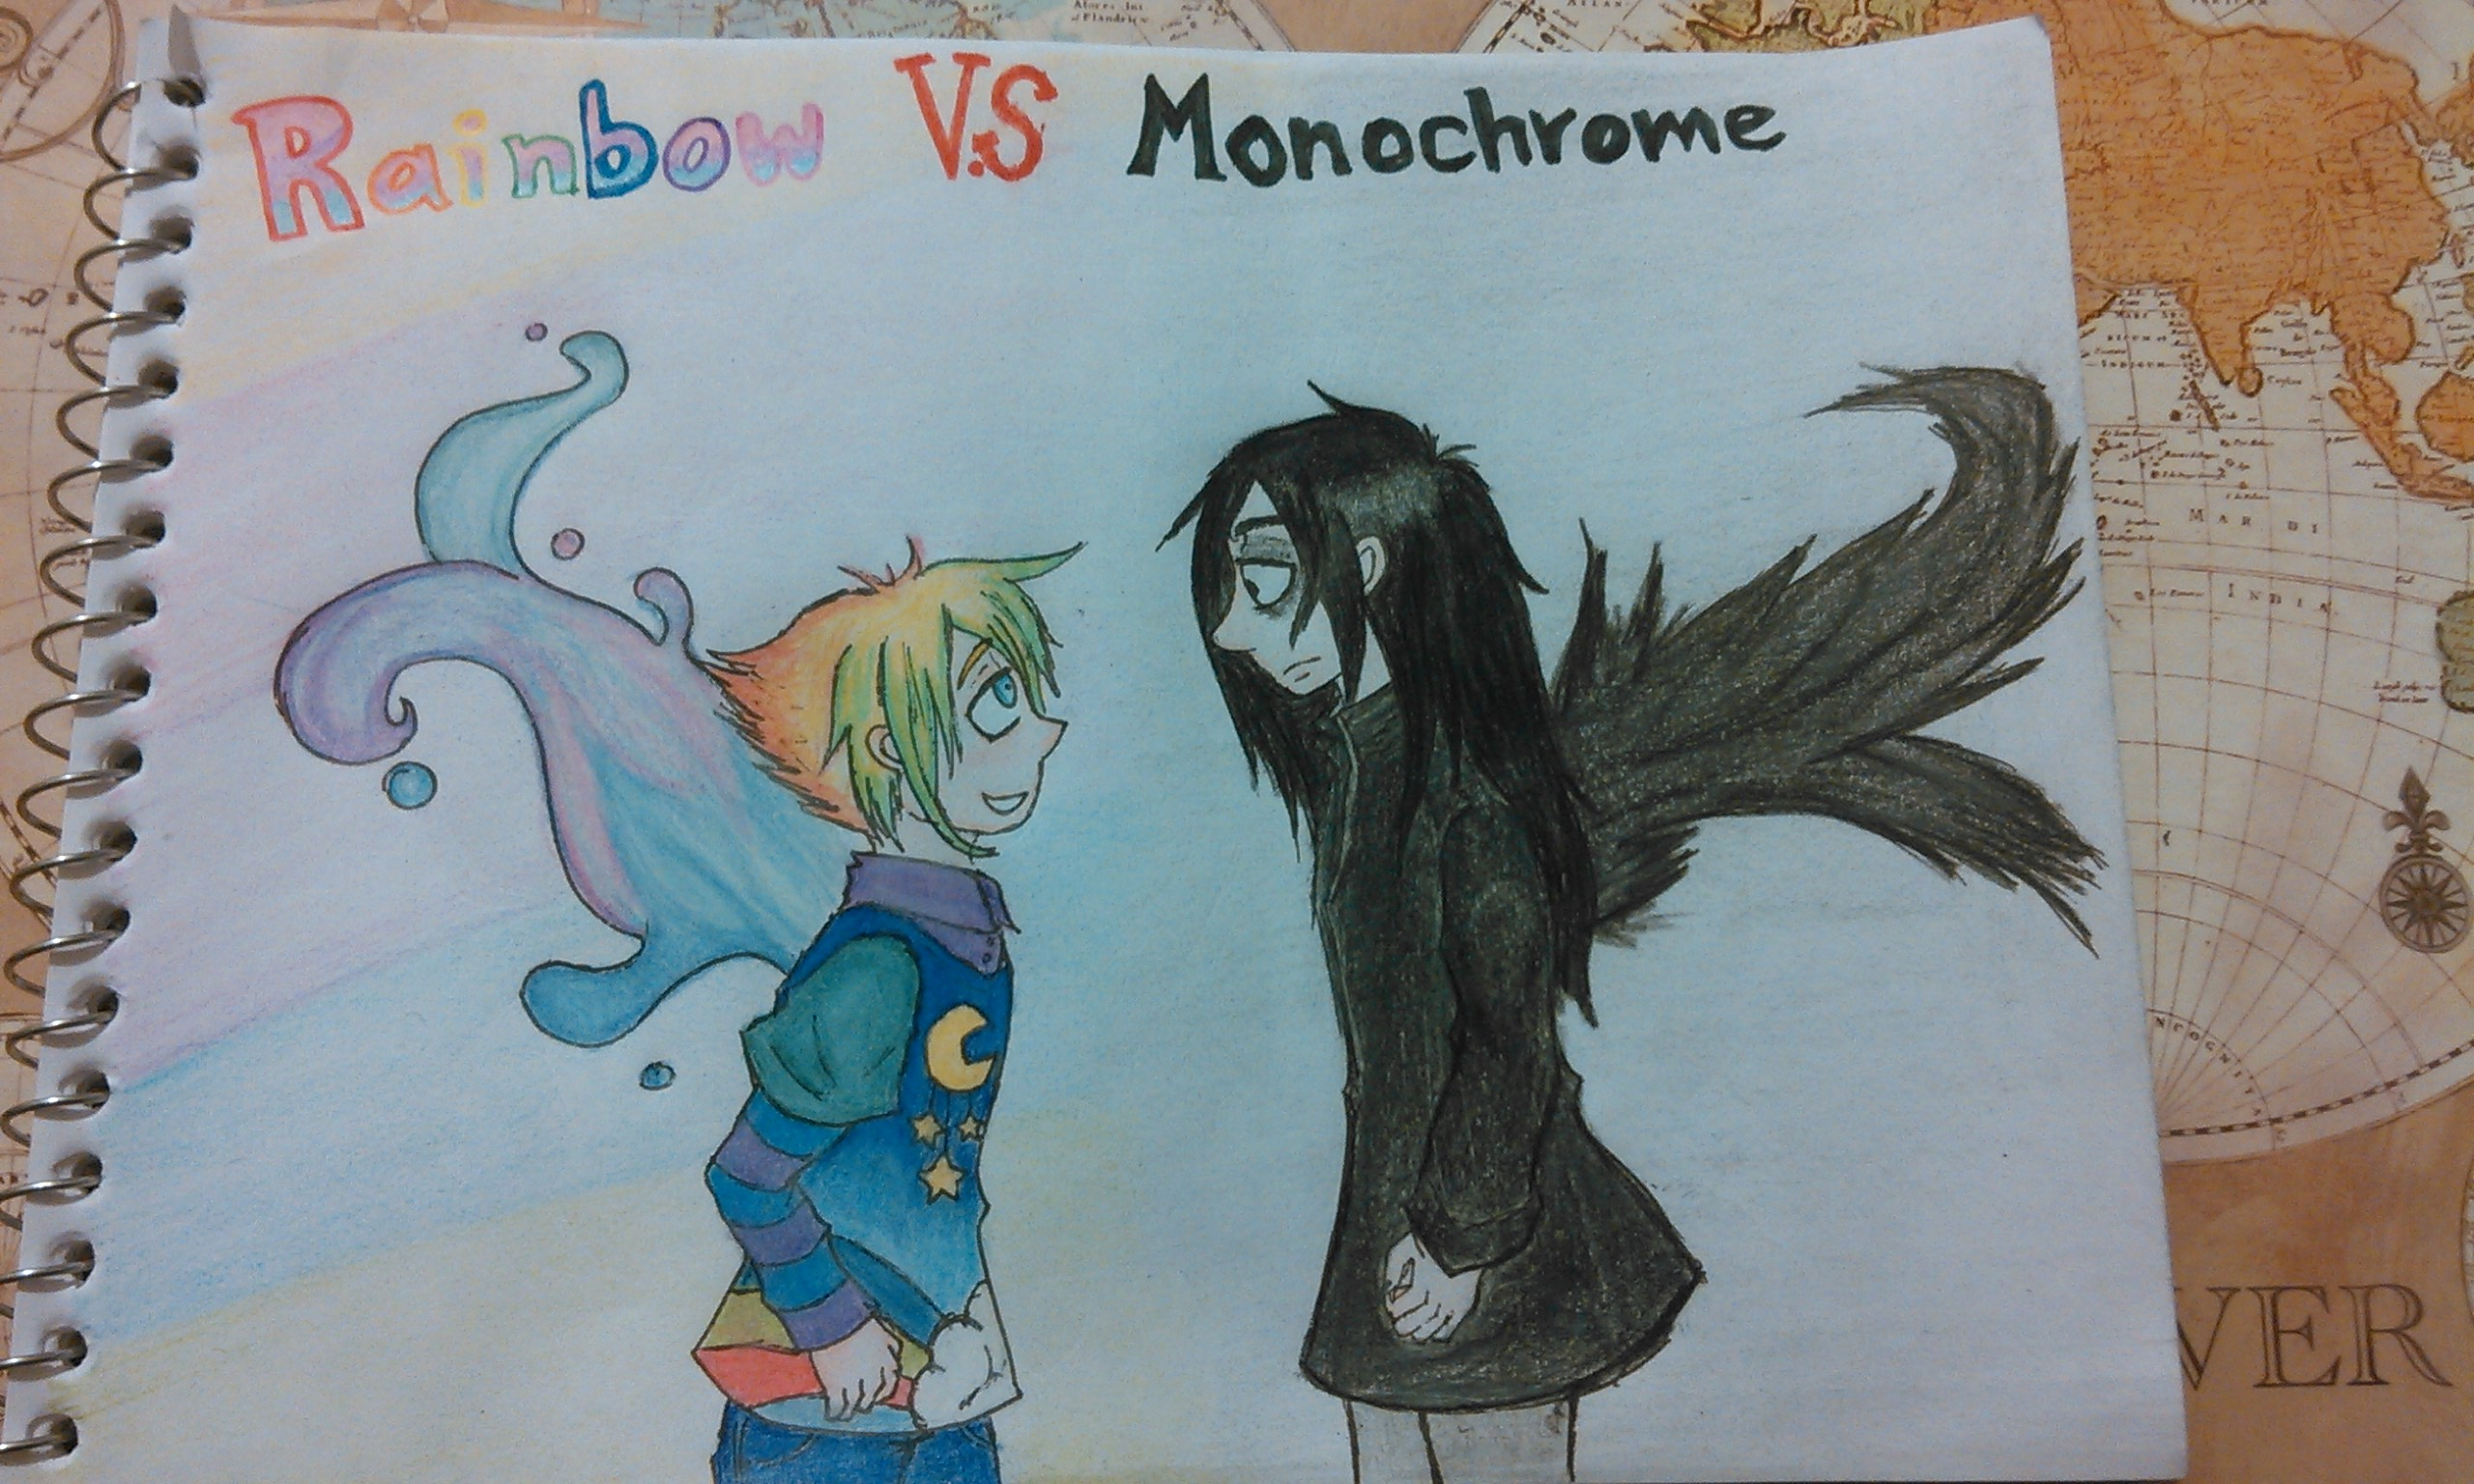 Rainbow VS Monochrome